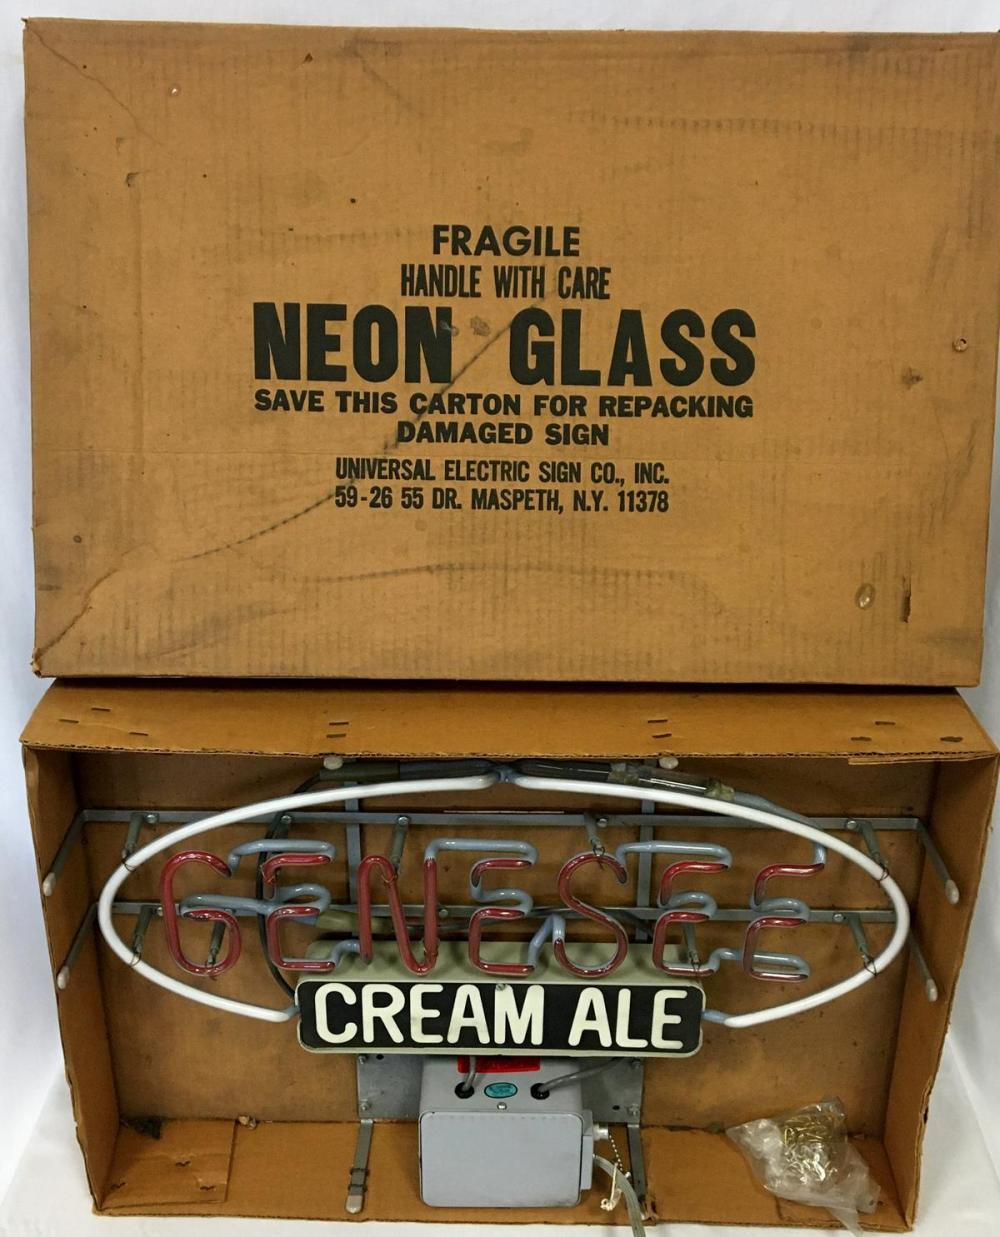 Vintage NOS 1970's Genesee Cream Ale Neon Beer Lighted Sign w/ Original Box WORKS